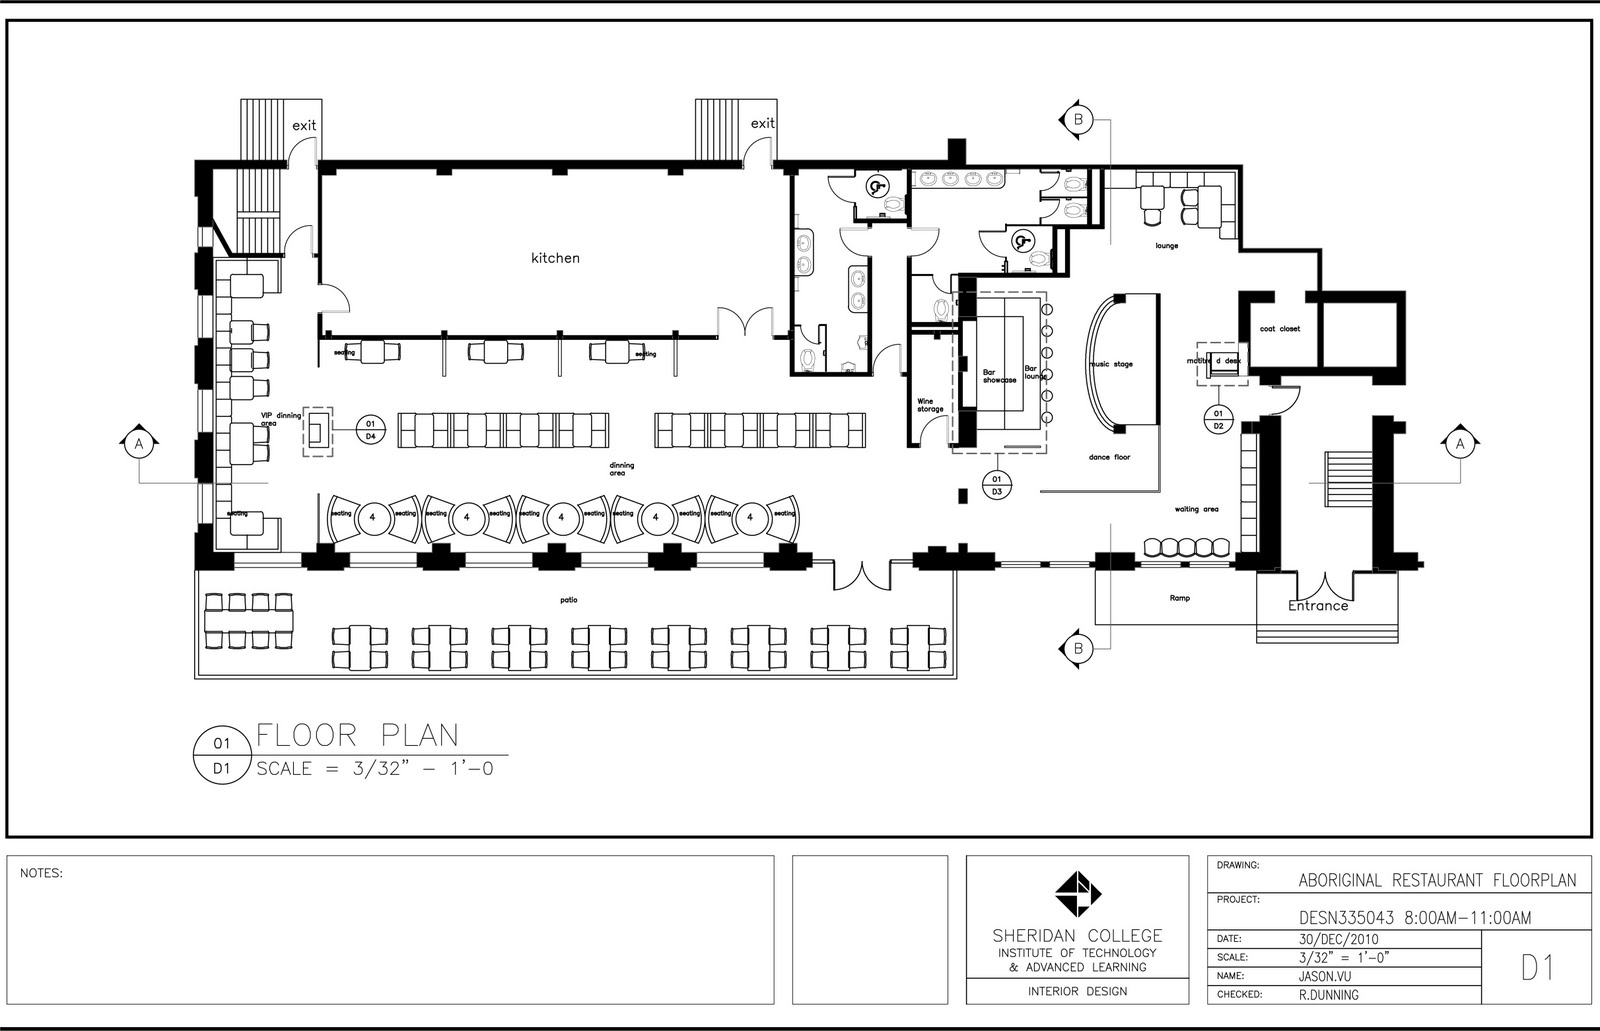 Design A Restaurant Floor Plan Small Restaurant Square